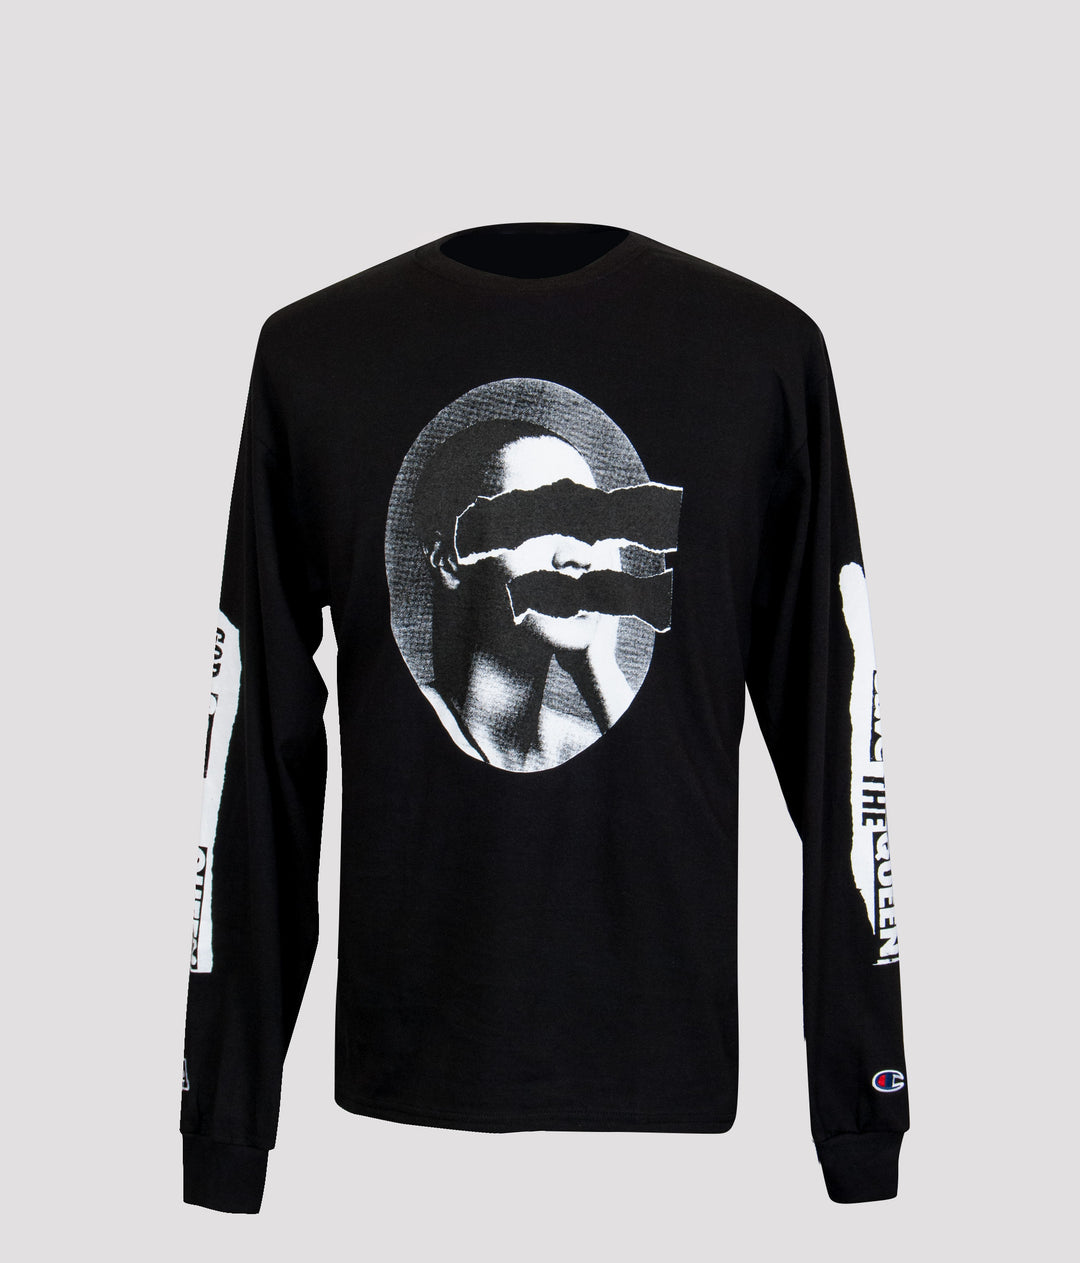 QUEEN B Longsleeve t-shirt